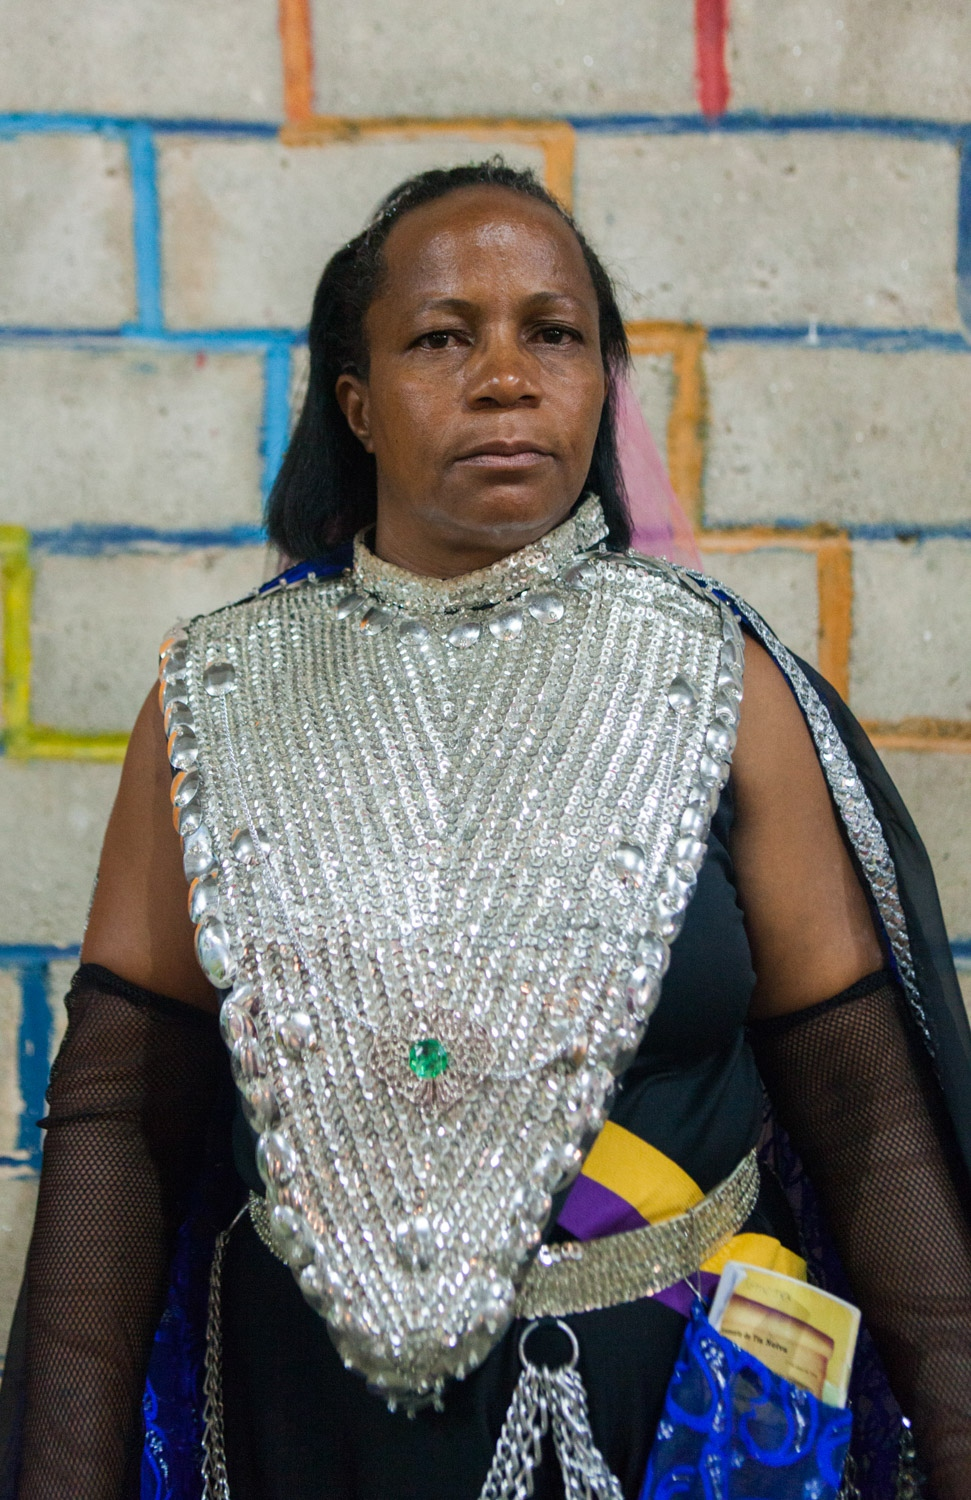 · Maria poses for a portrait in her nymph ceremonial dress. Cavalcante do Goais, 2014. // · Maria posa para un retrato usando su traje ceremonial de ninfa. Cavalcante do Goais, 2014.